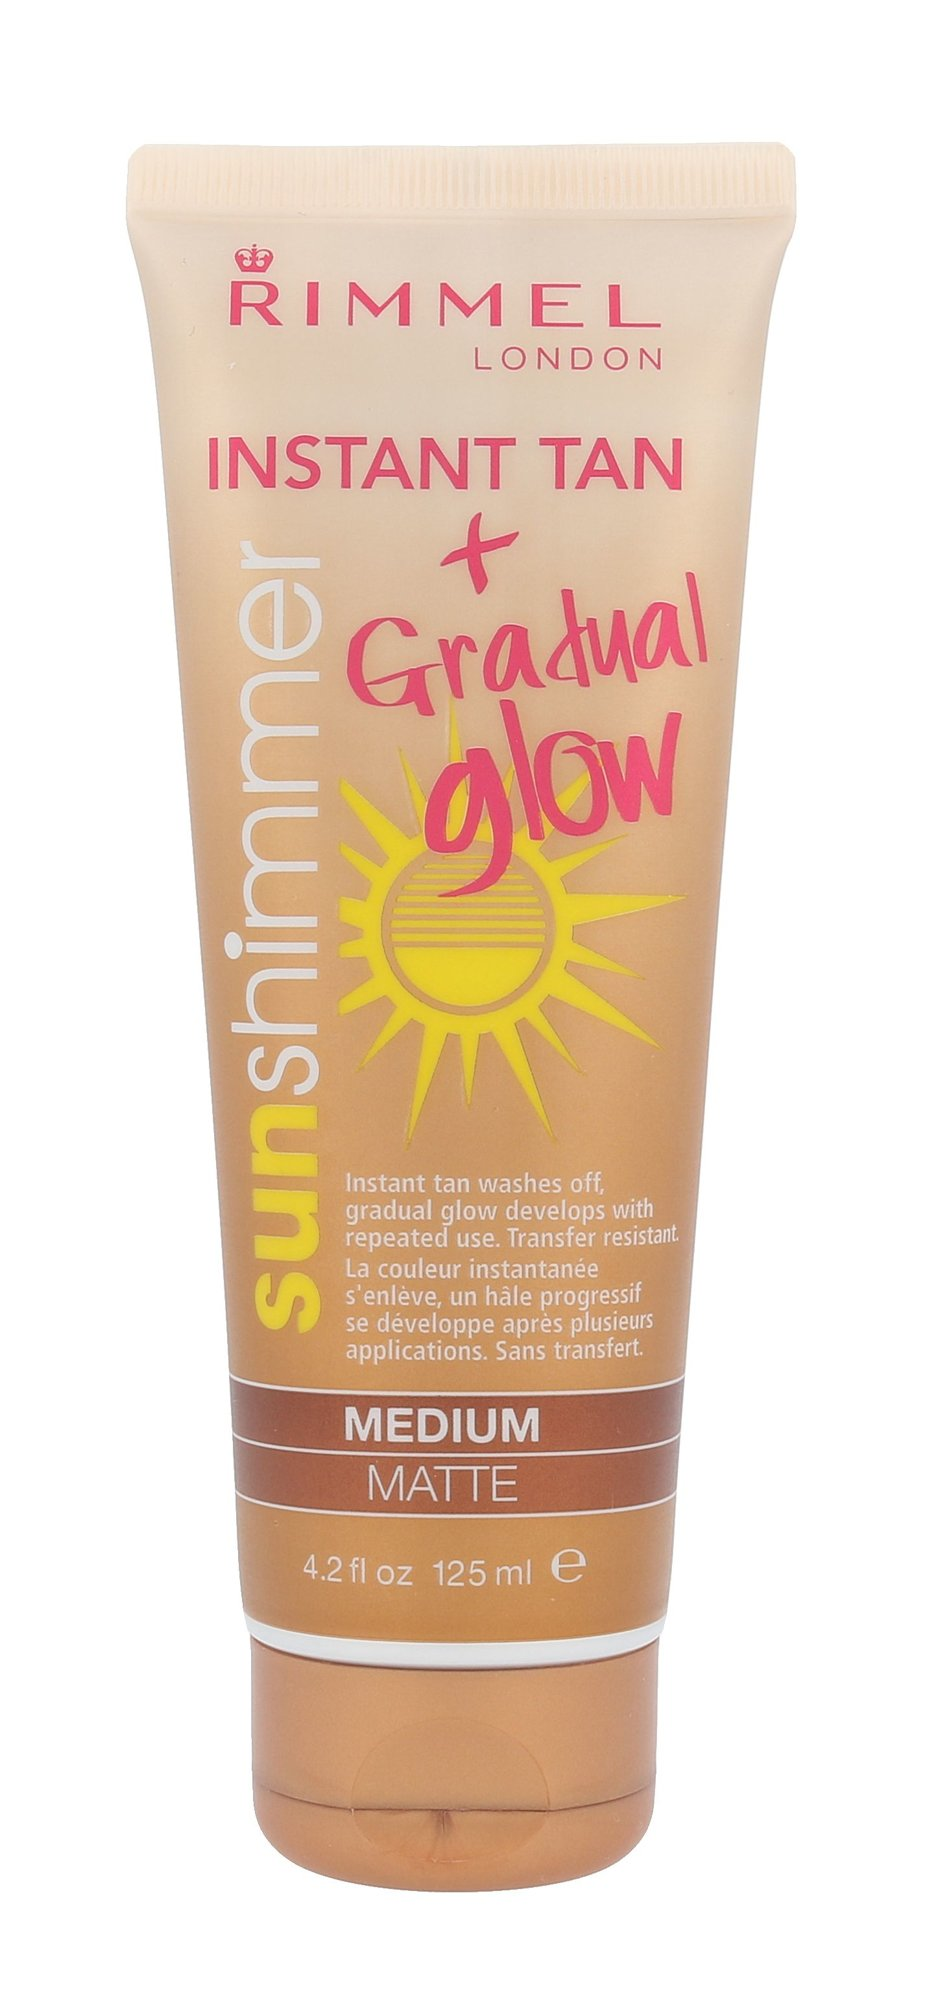 Rimmel London Sun Shimmer Instant Tan Cosmetic 125ml Medium Matte